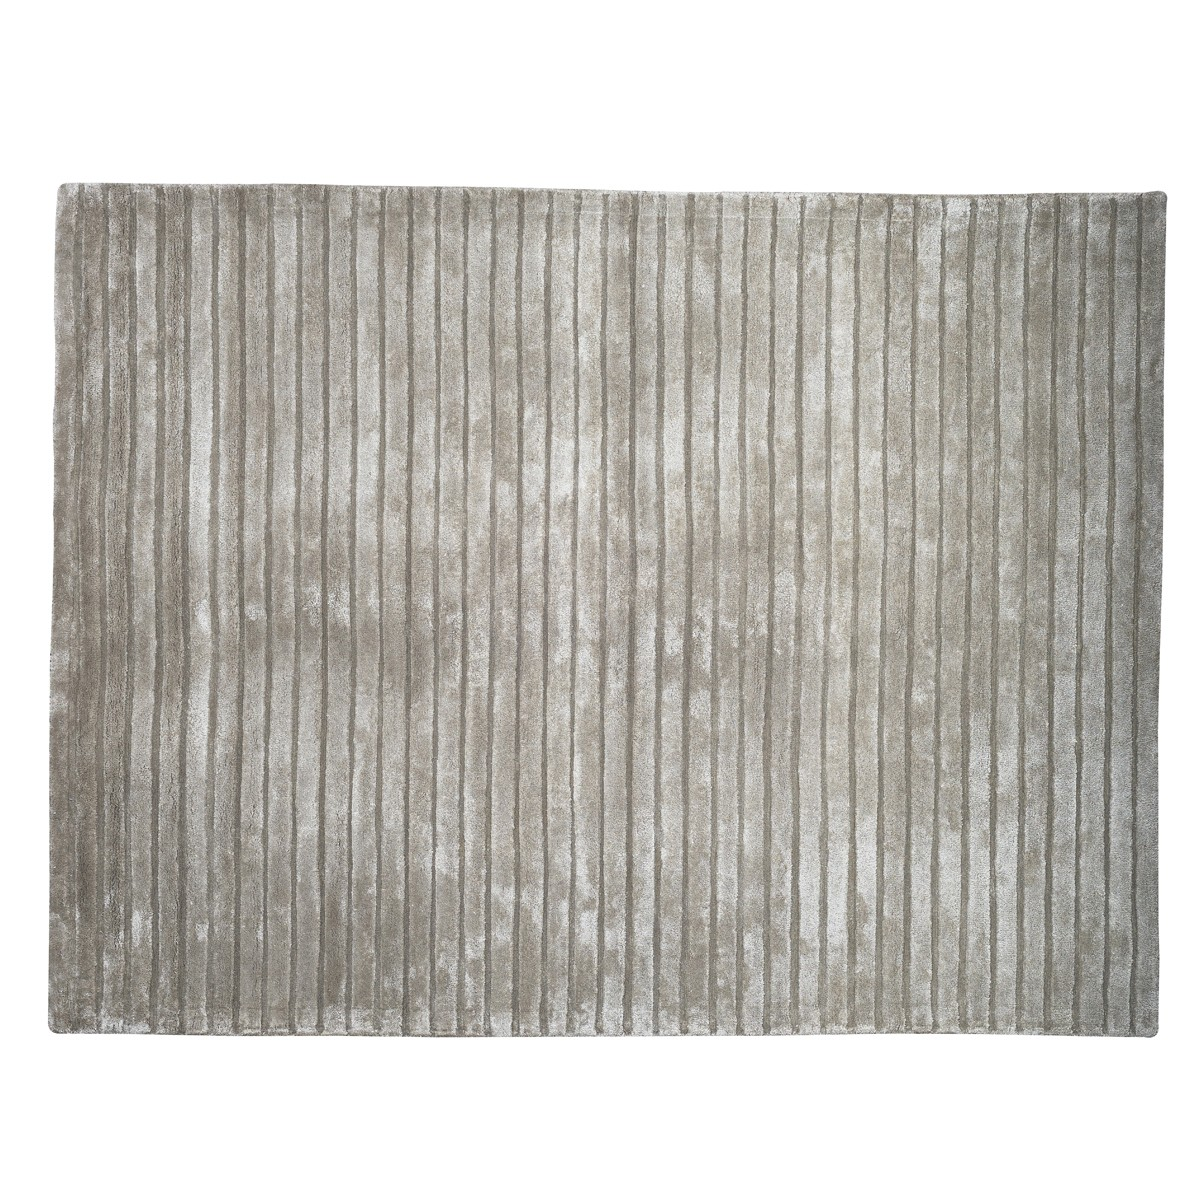 Envy -  Stripe Rug  in Grey